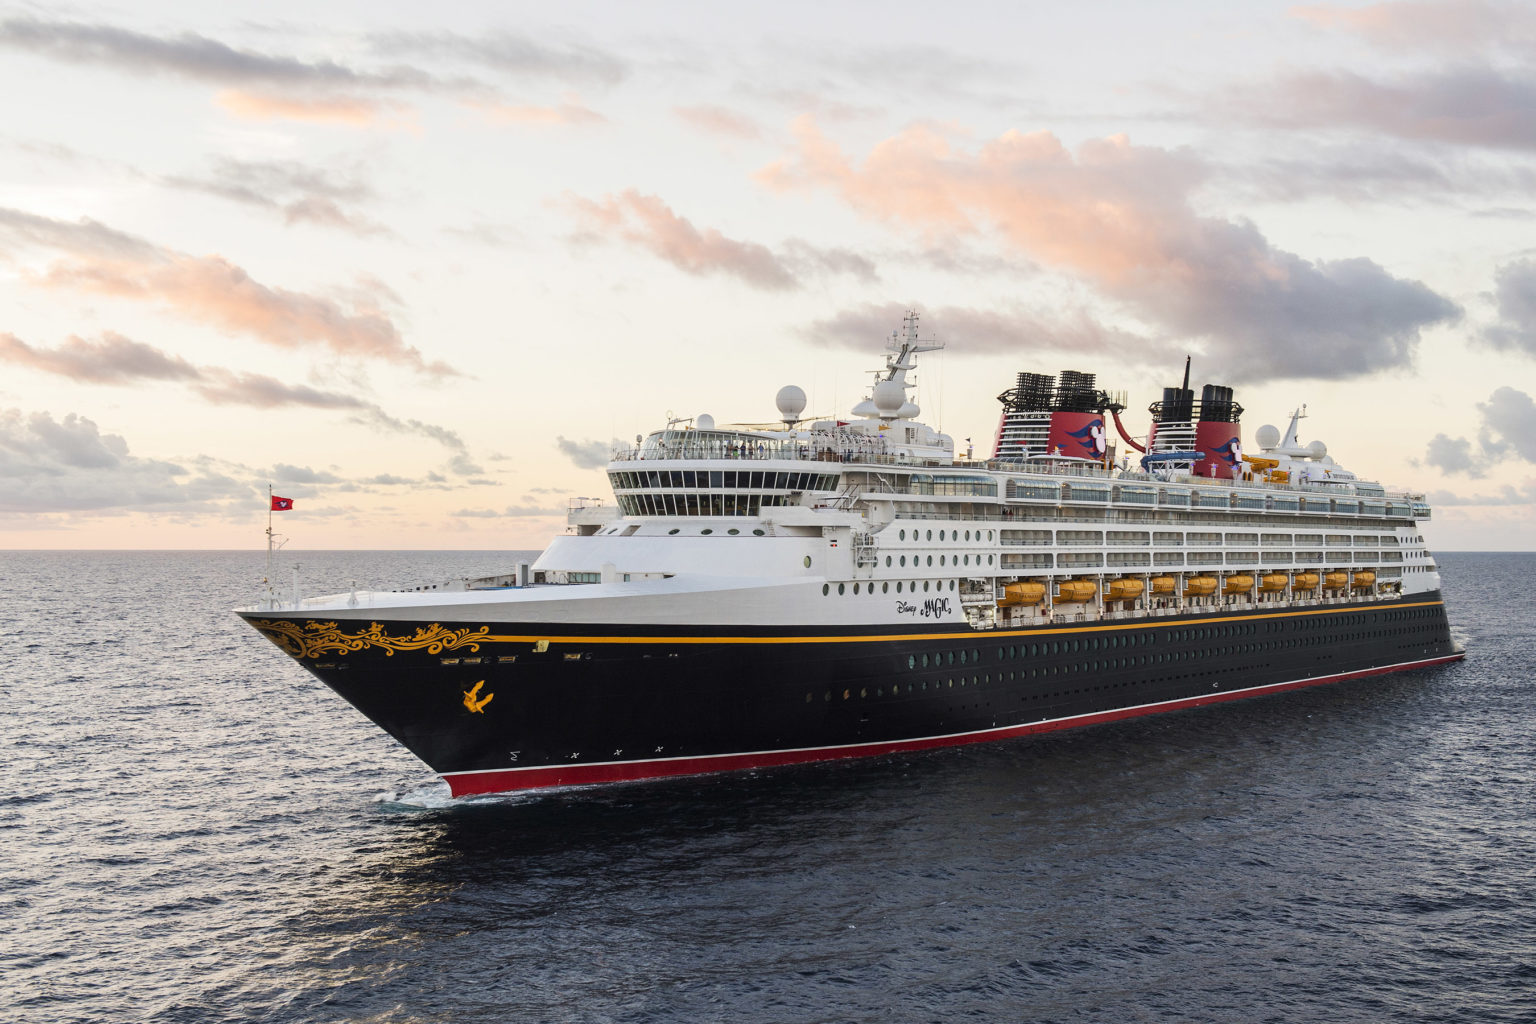 How to Save Money on Disney Cruise Line: Top 10 Money Saving Tips featured by top US Disney blogger, Marcie and the Mouse: The Disney Magic embodies the Disney Cruise Line tradition of blending the elegant grace of early 20th century transatlantic ocean liners with contemporary design to create a stylish and spectacular cruise ship. On the Disney Magic, guests can experience new adventures, explore re-imagined areas and discover exciting additions for the whole family. (Matt Stroshane, photographer)